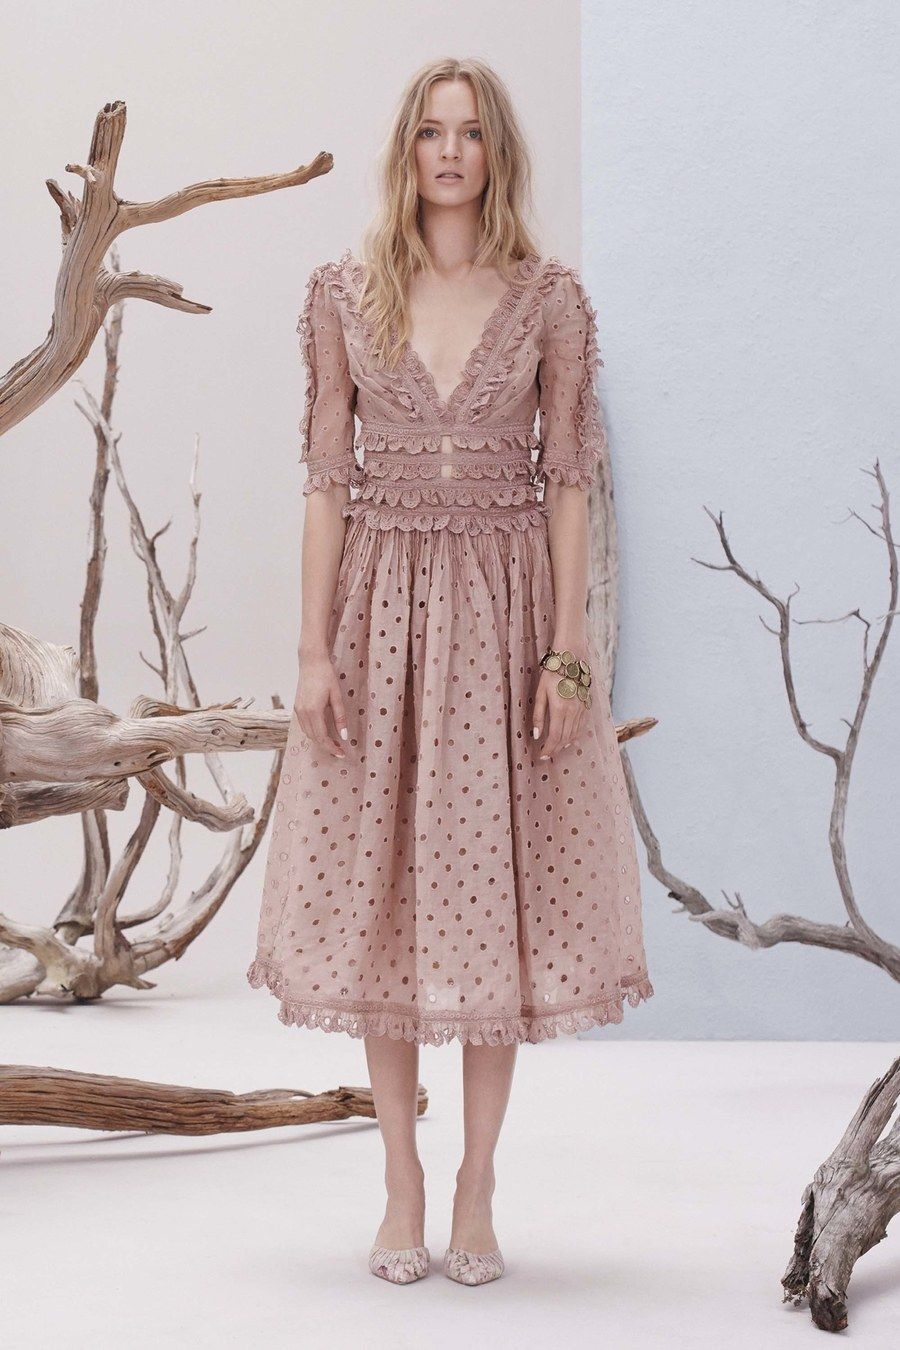 Zimmermann resort fashion show resorts collection and